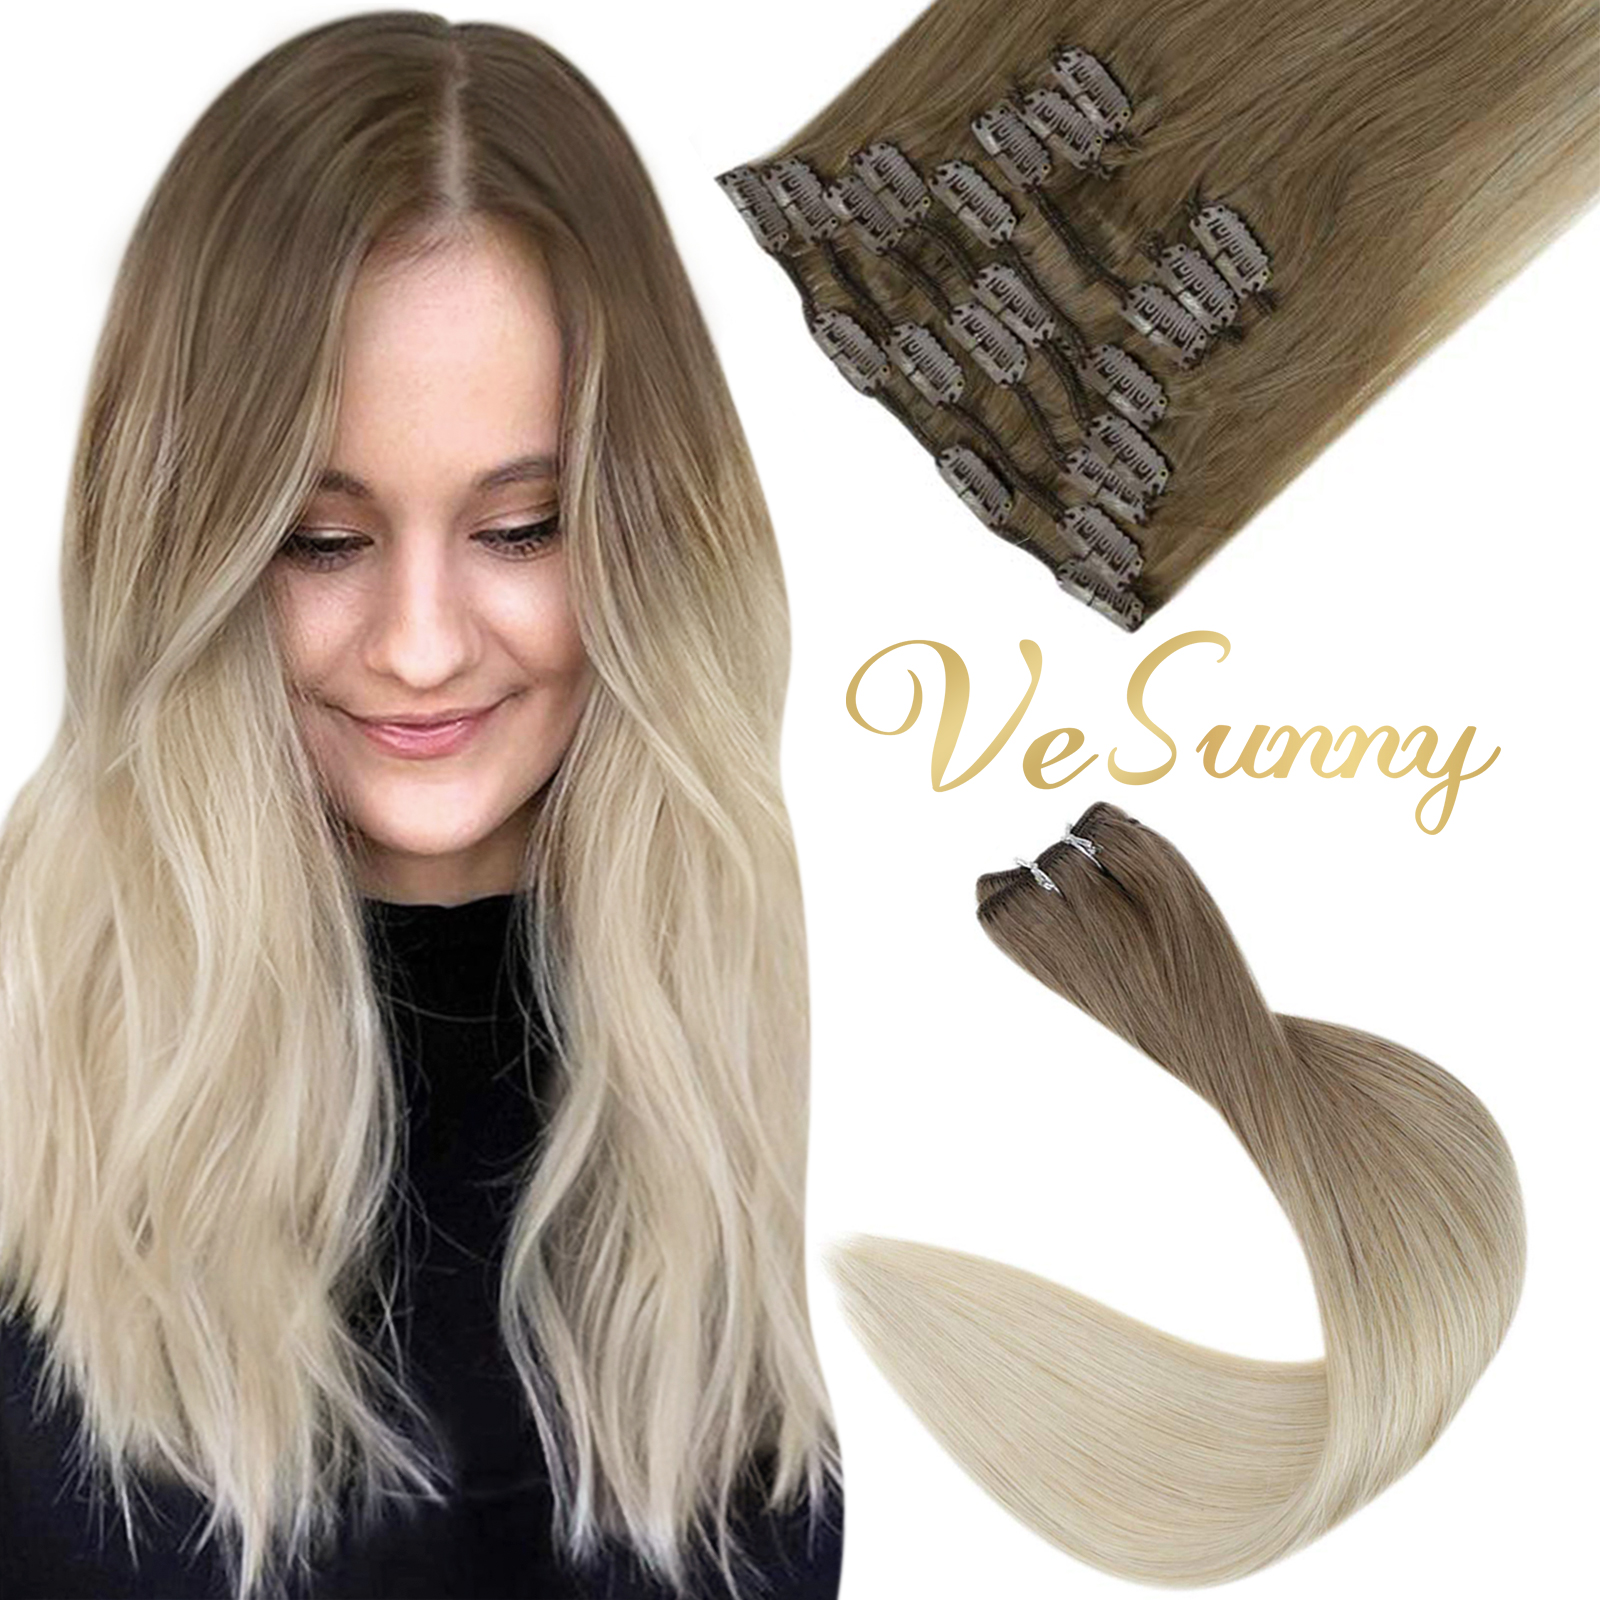 VeSunny Human Hair Extensions Clip In Blonde Thickened Double Weft Brazilian Hair 120g/7pcs Remy Hair Full Head Silky Straight